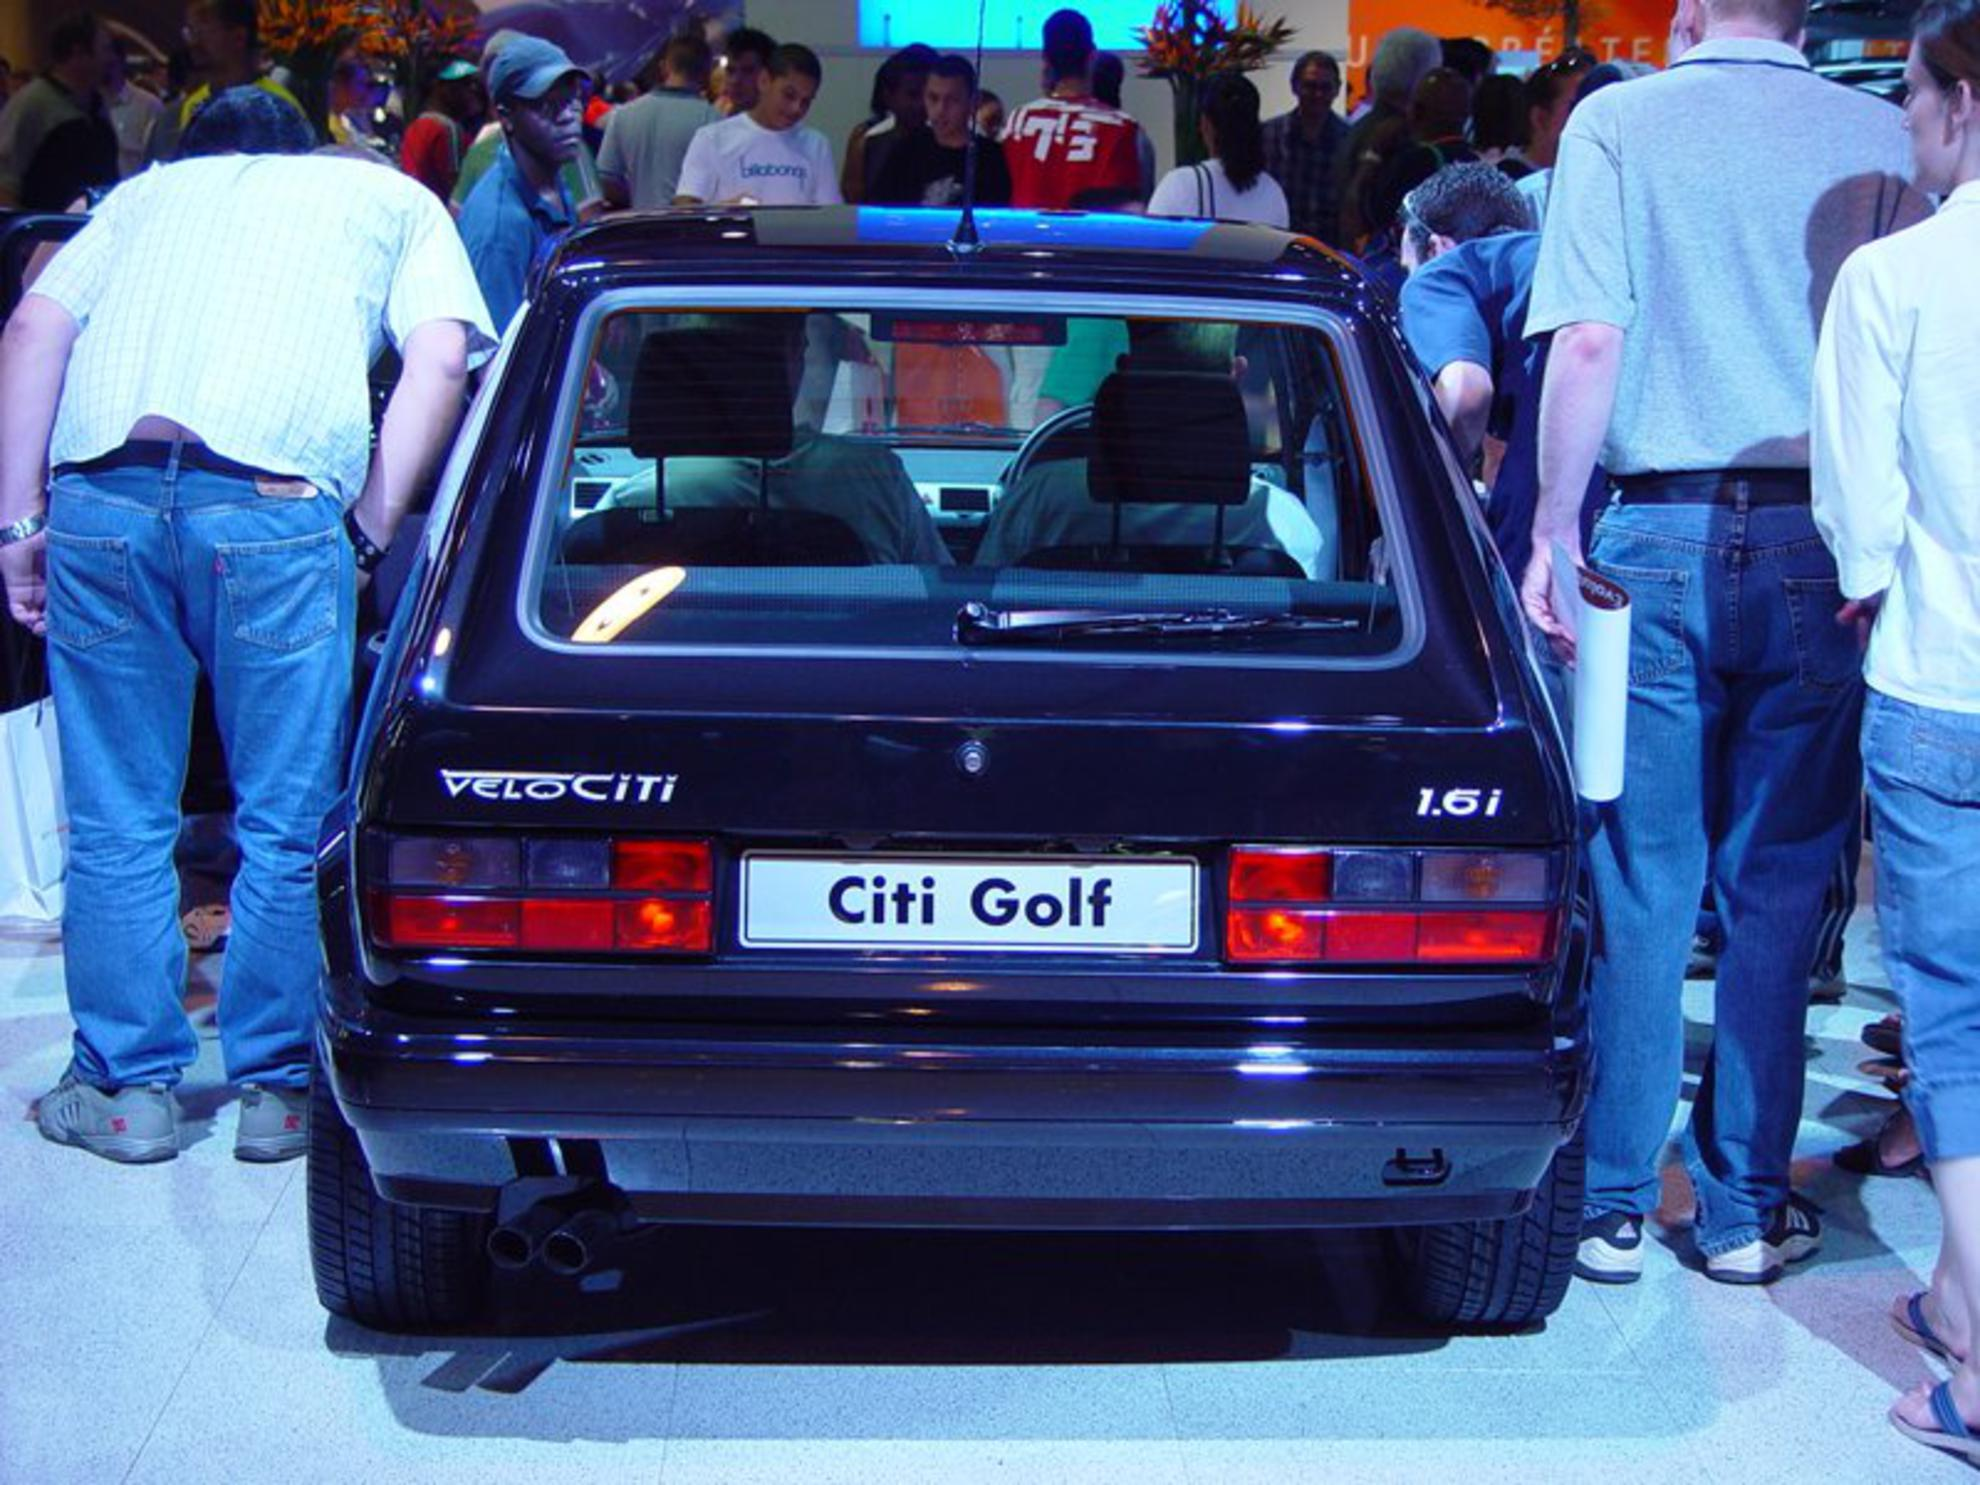 Volkswagen City Golf 2004